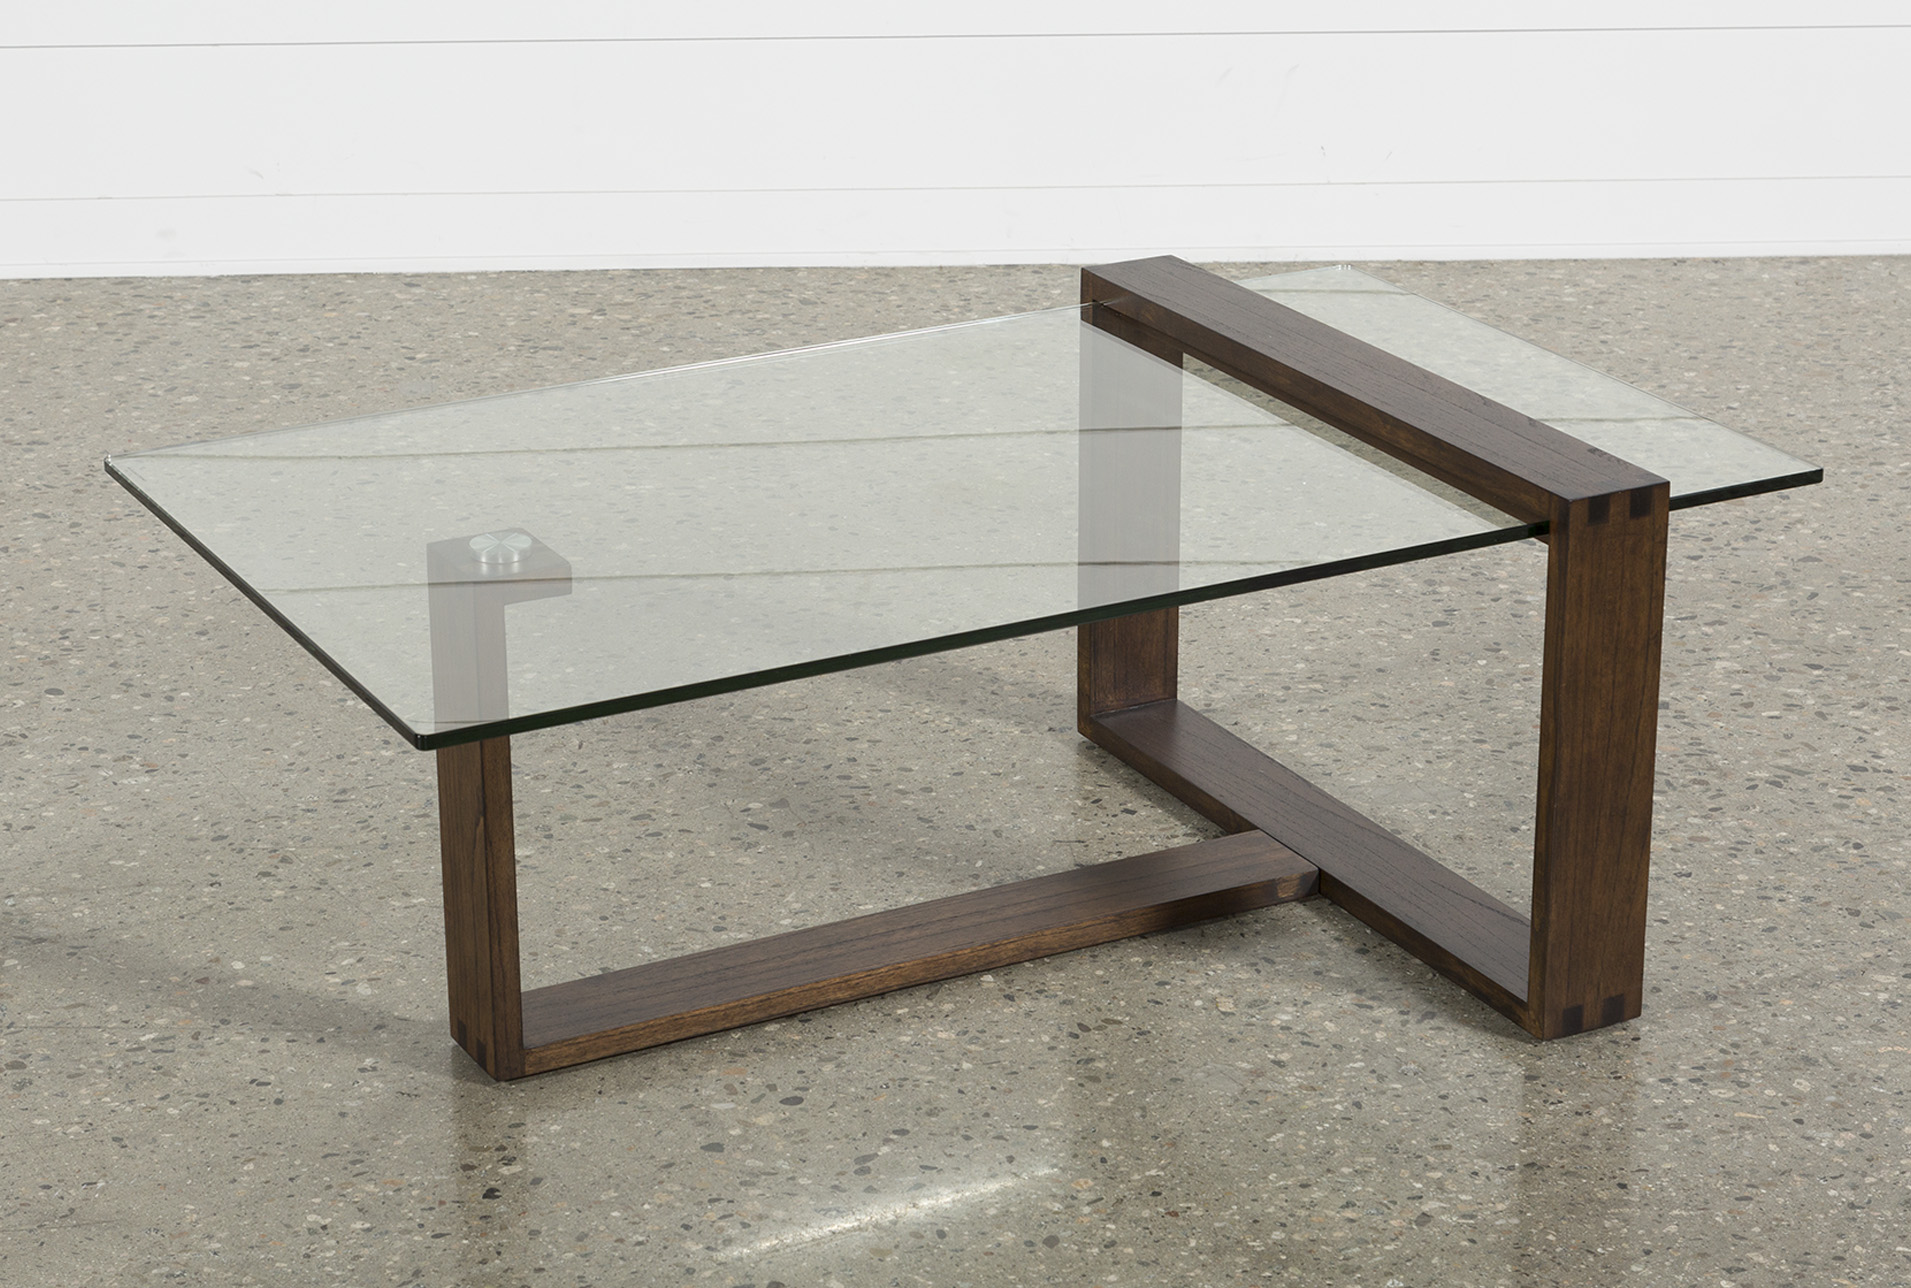 Nola Coffee Table Coffee Table Table Decor Living Room Coffee Table Living Spaces [ 1288 x 1911 Pixel ]